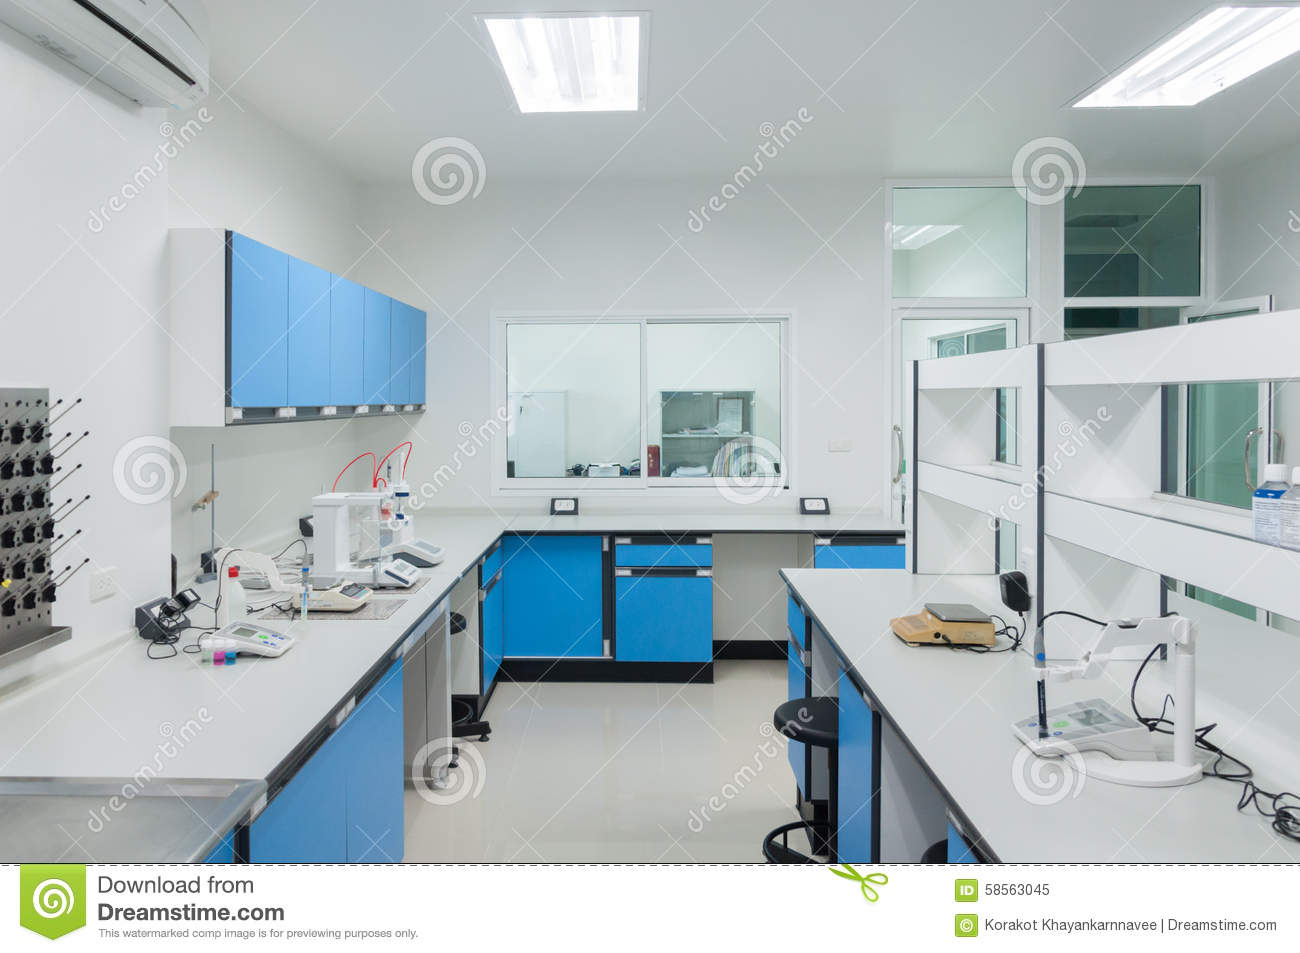 science modern lab interior architecture stock photo image science modern lab interior architecture royalty stock photo